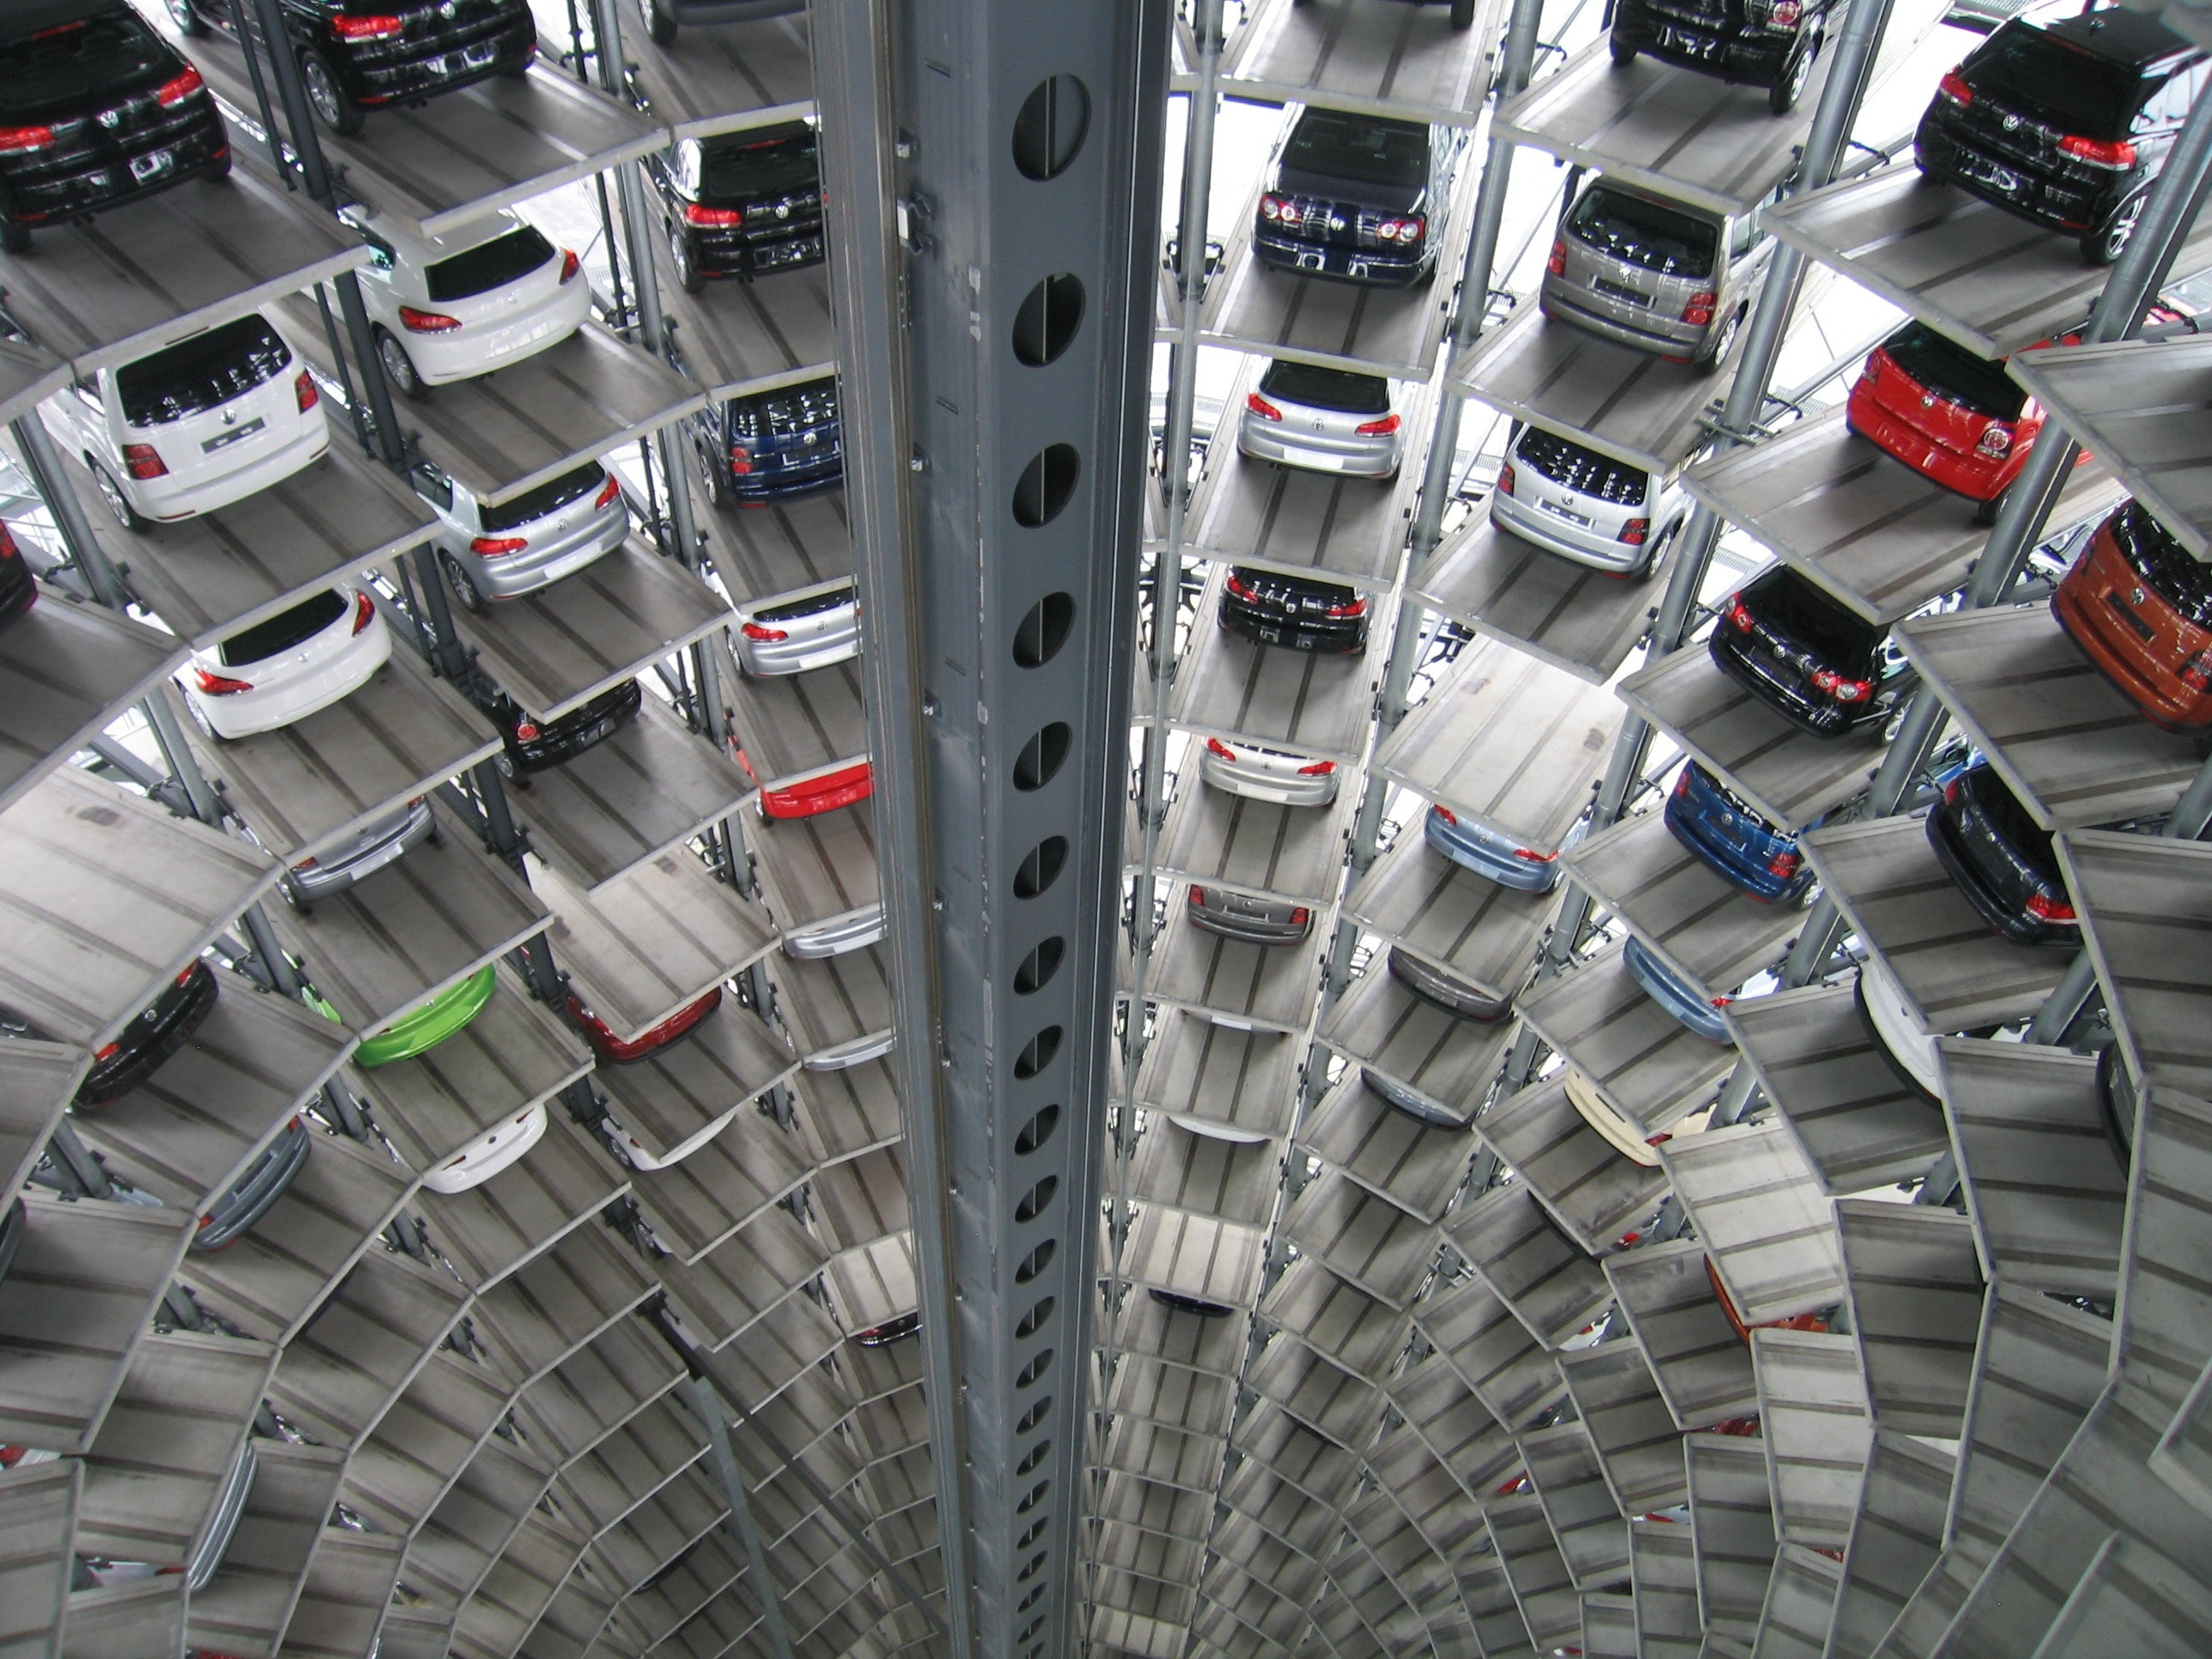 Vehicles Parked Inside Elevated Parking Lot, Photos of cars, Tower, Parking, Vehicles, HQ Photo